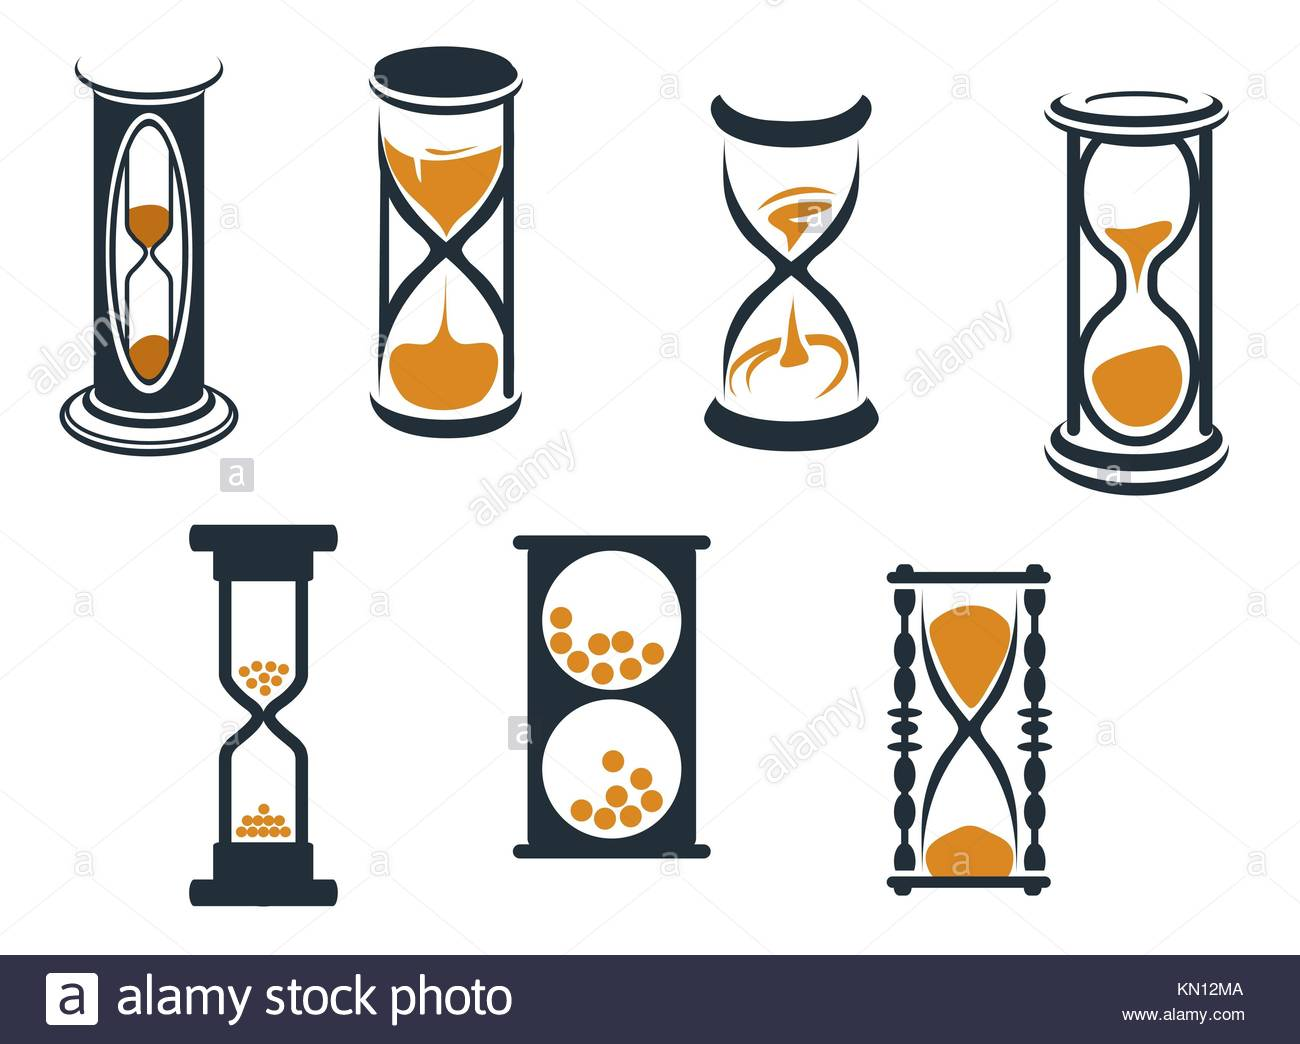 Symbols Of Passing Of Time Stock Photos Symbols Of Passing Of Time